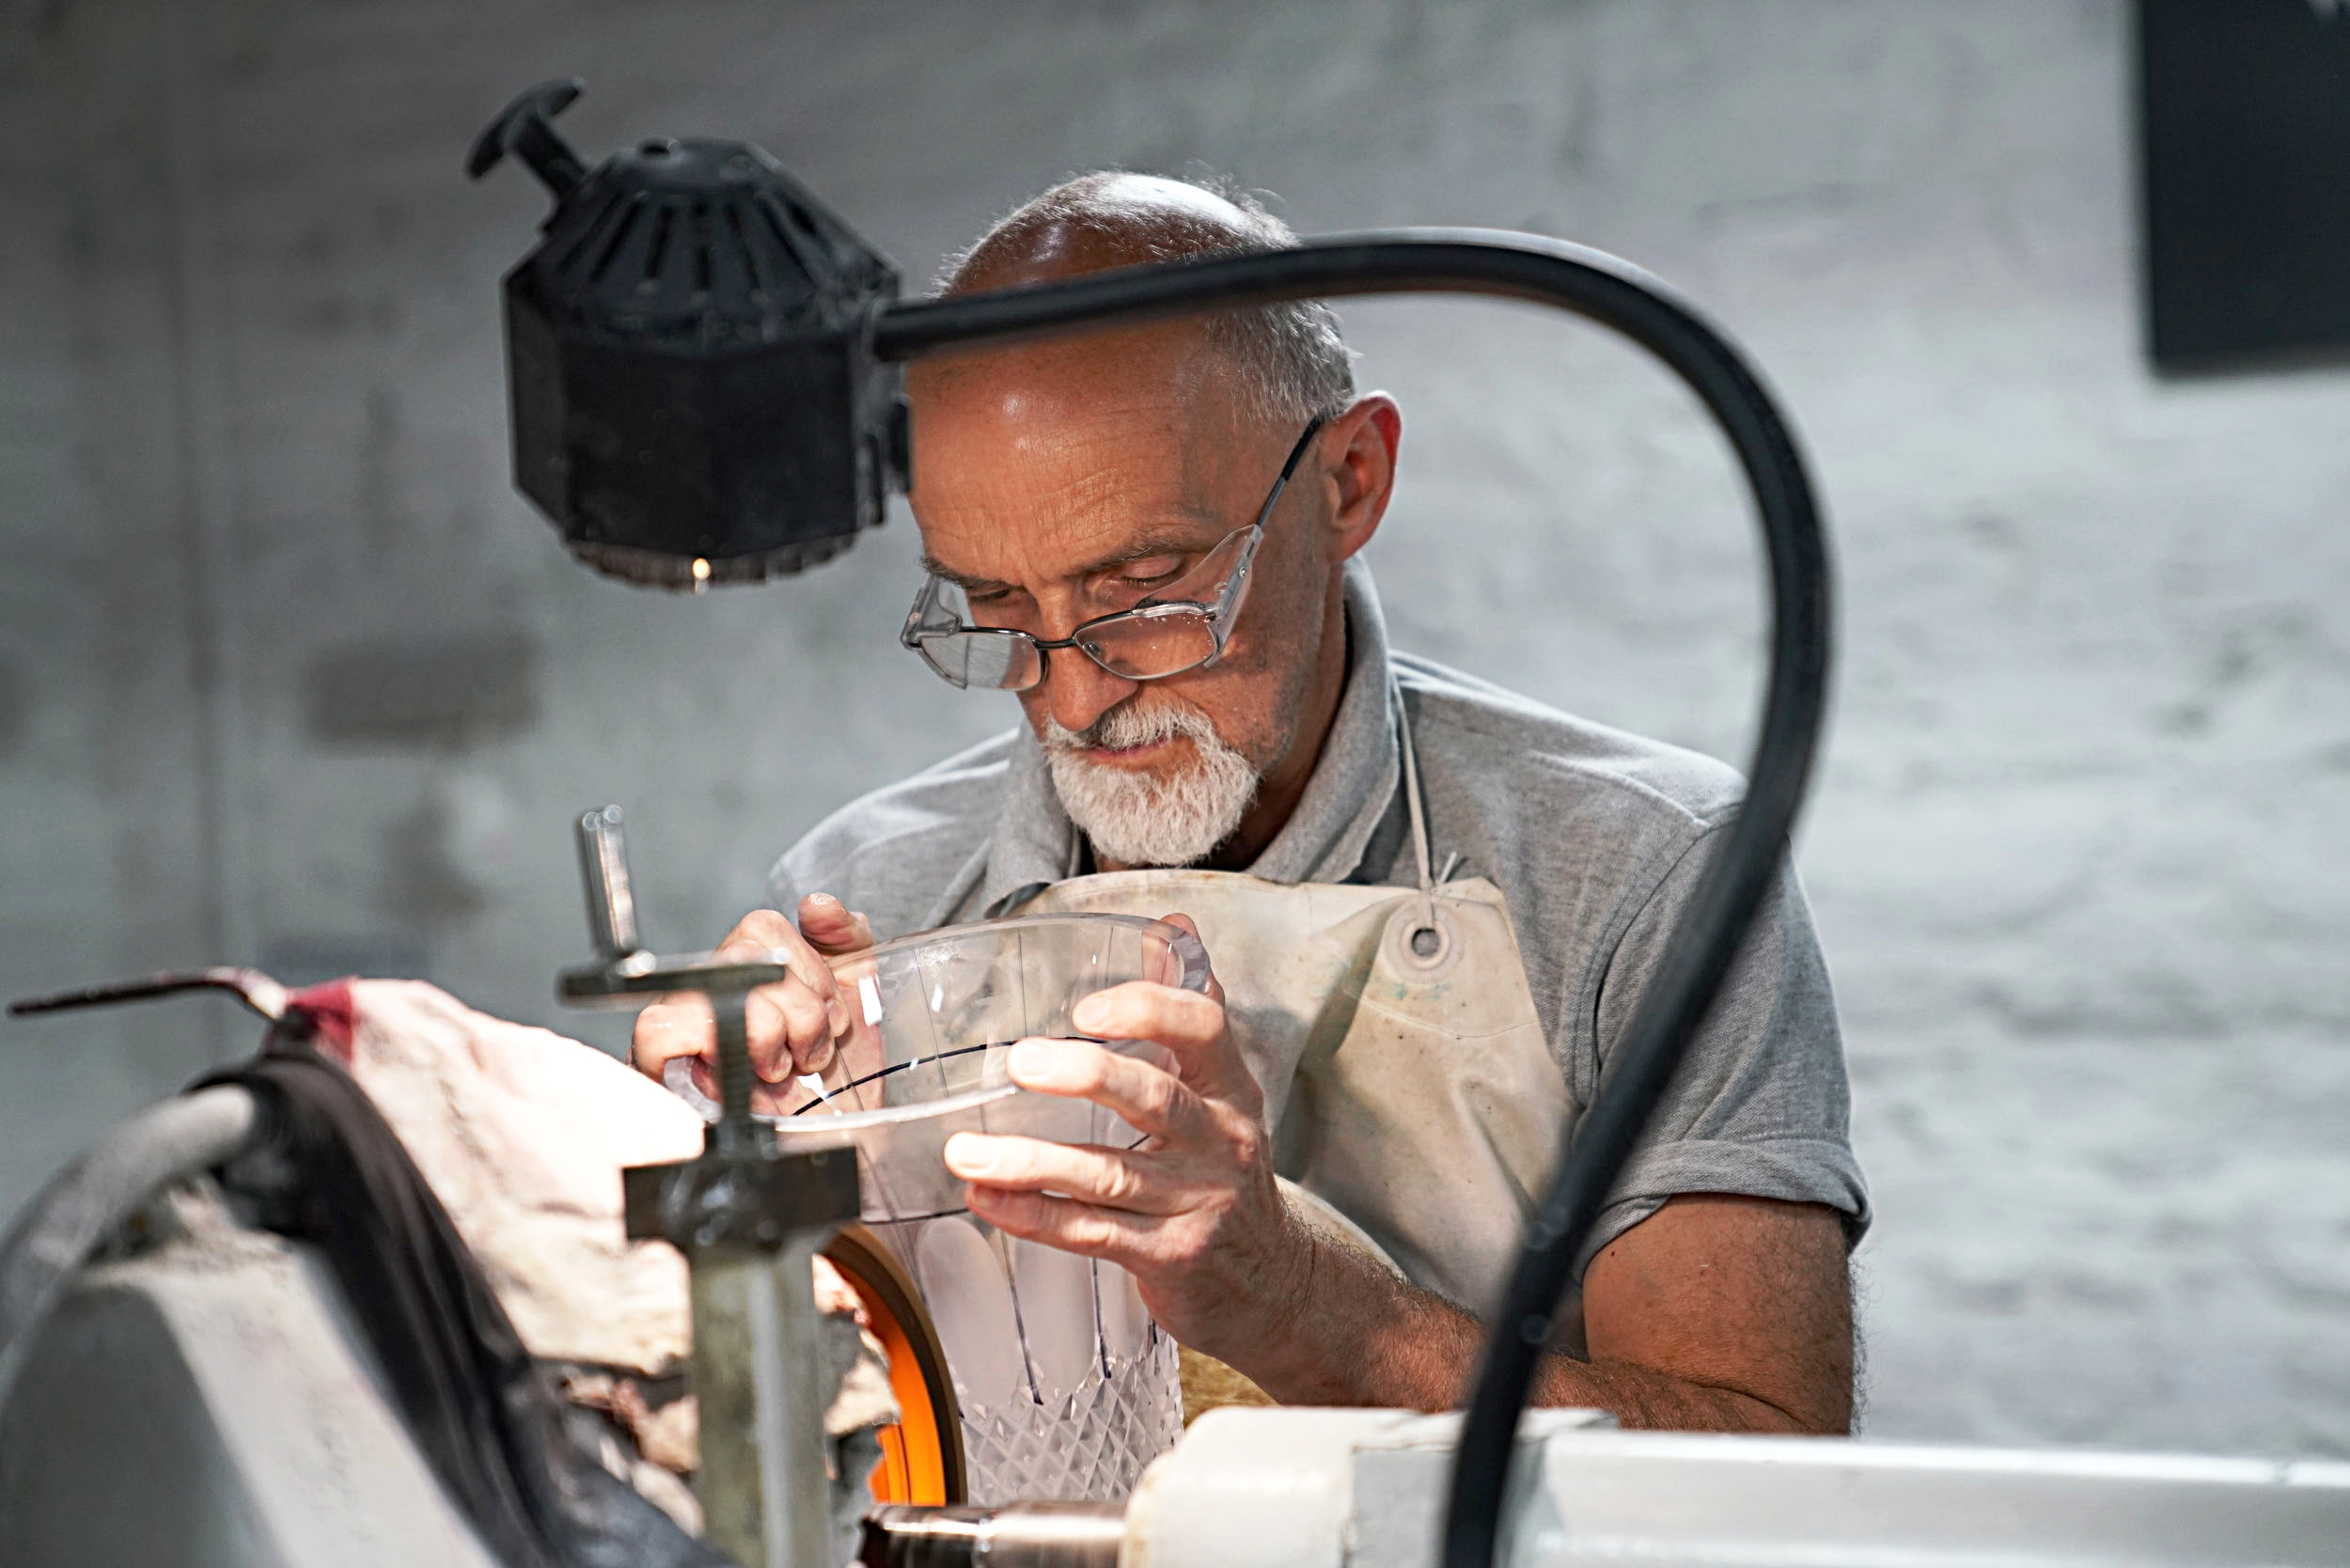 A master craftsman at work in the Waterford Crystal factory.